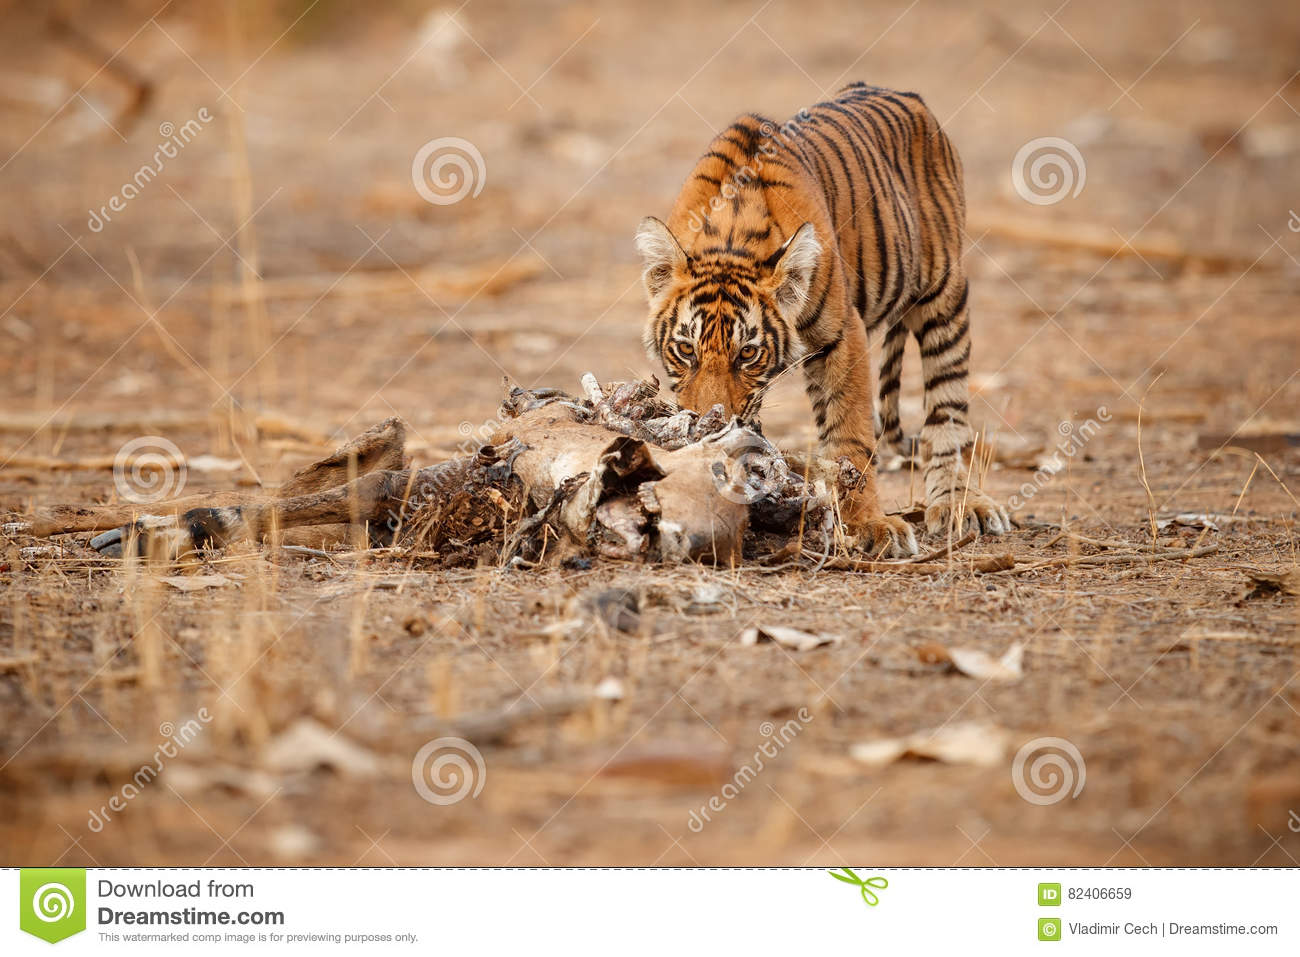 Tiger cub in a beautiful light in the nature habitat of Ranthambhore National Park